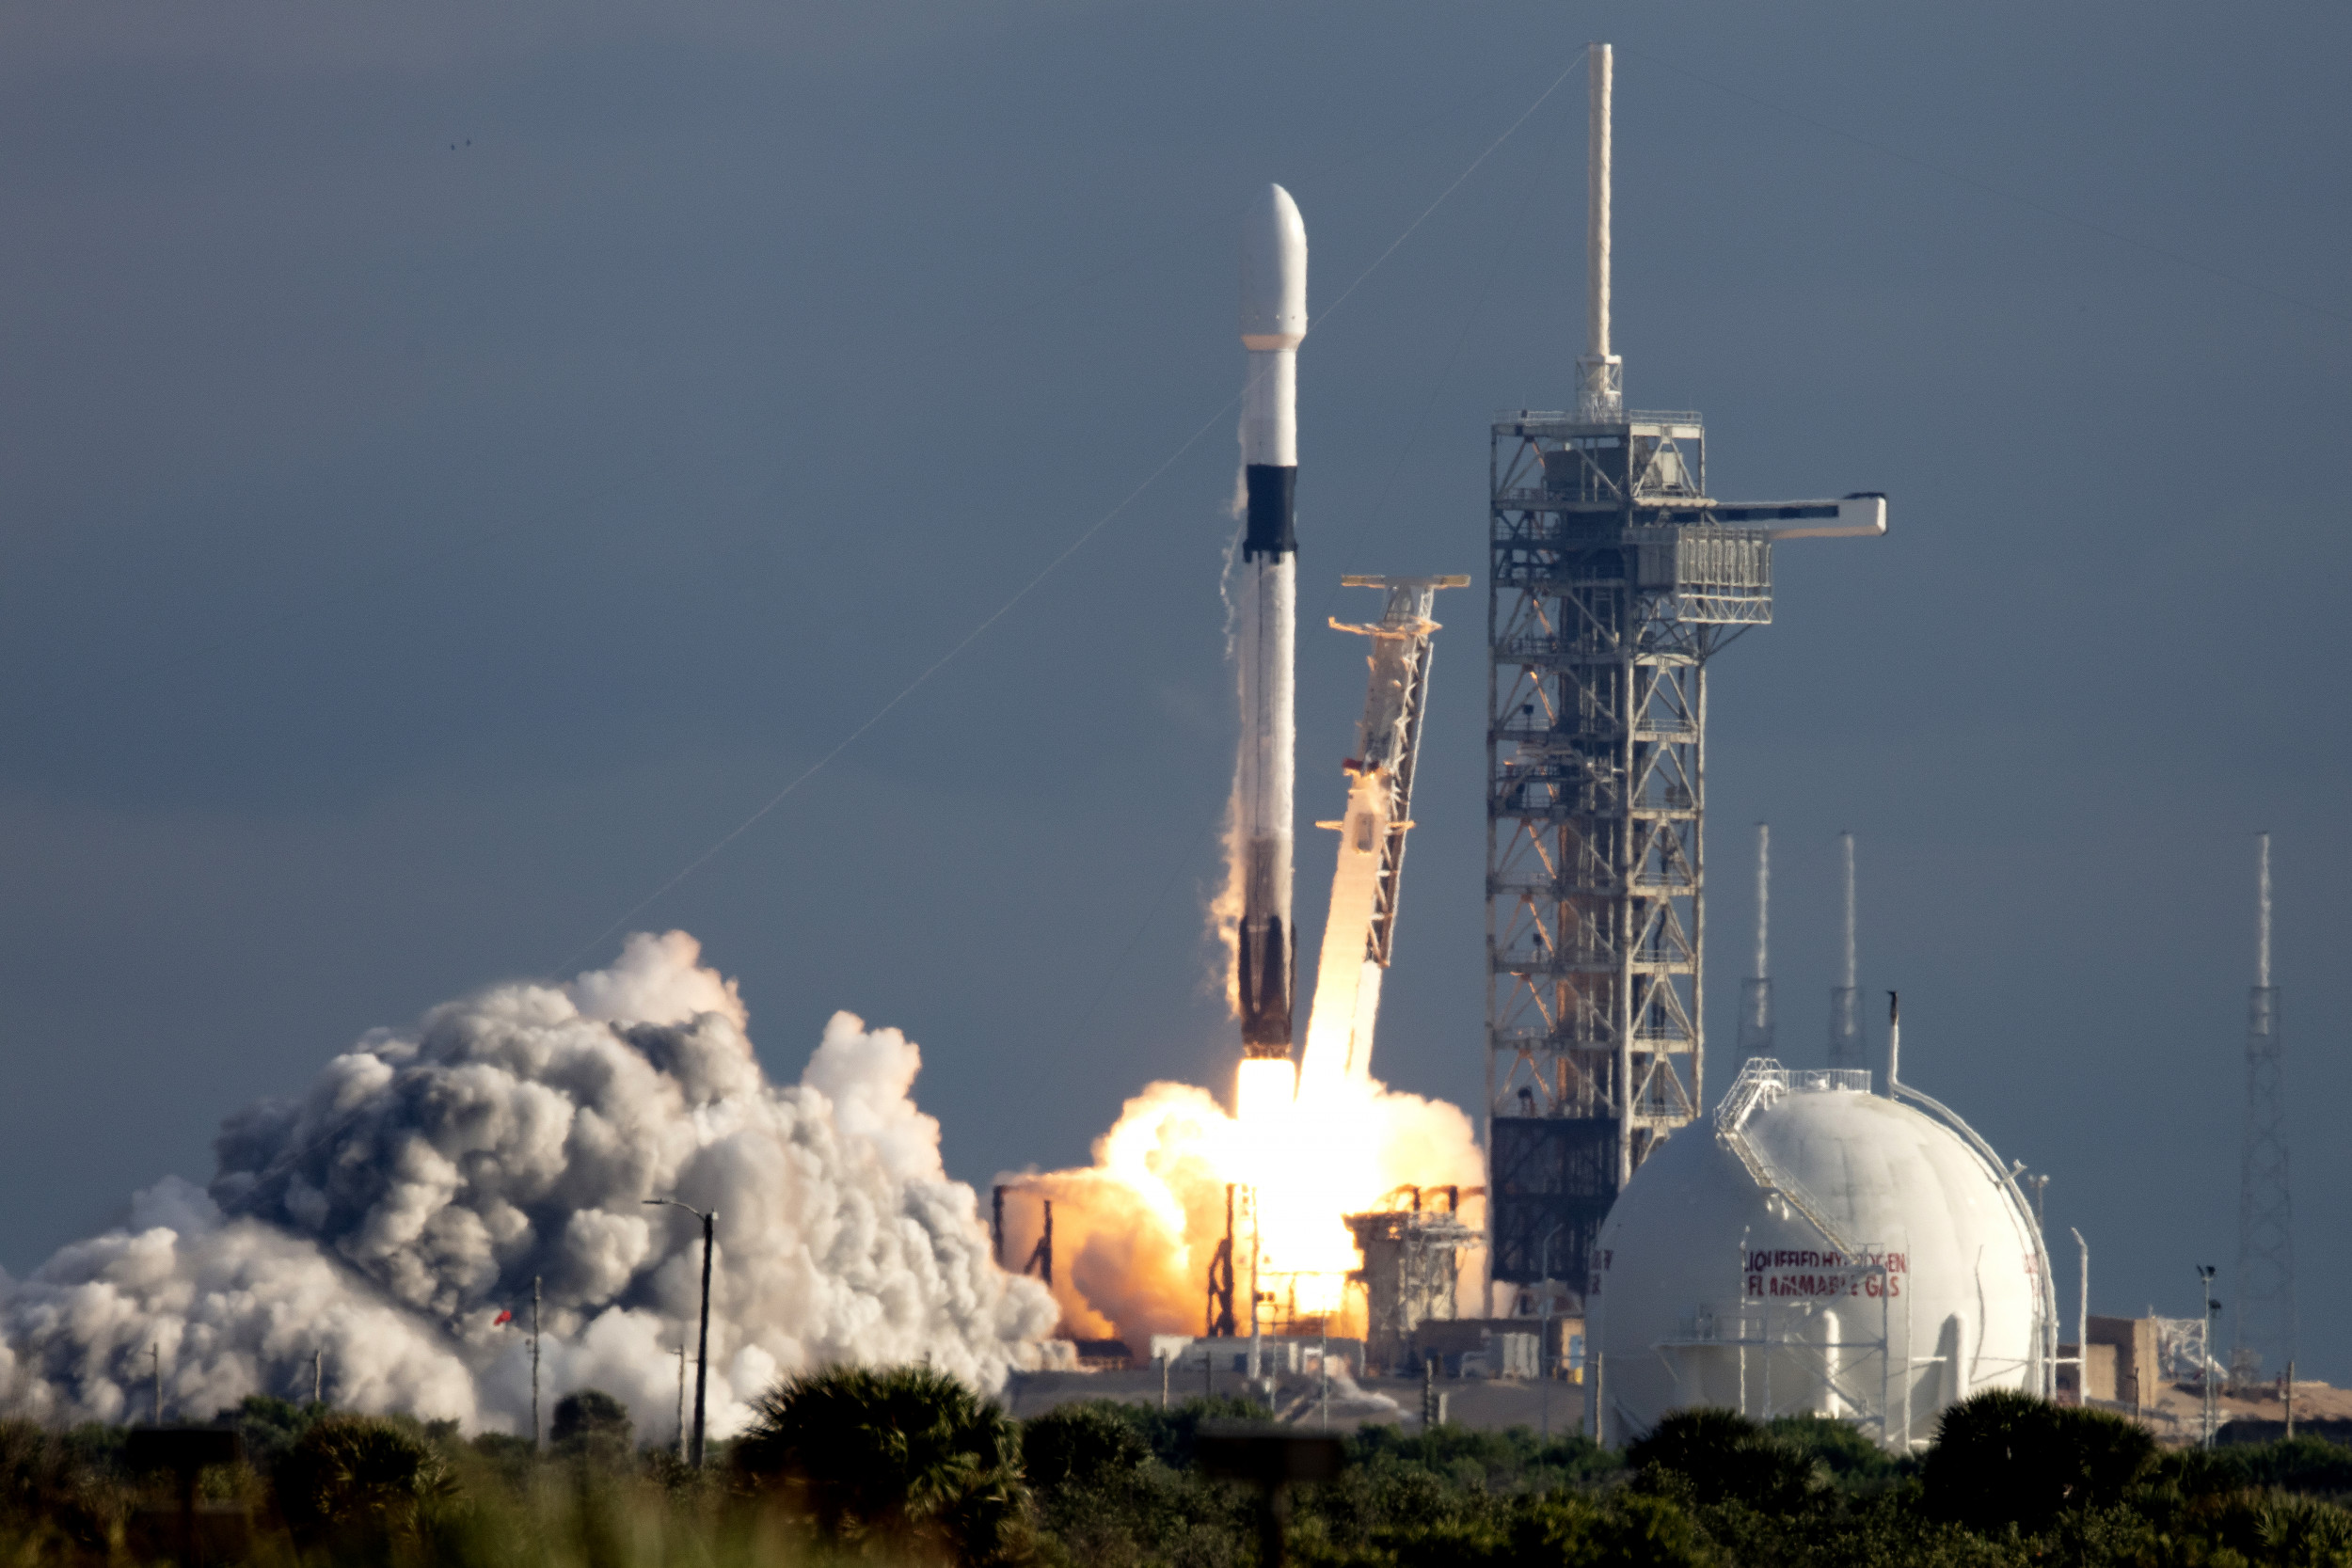 Why SpaceX's inspiration4 mission is more exciting, and risky, than Bezos' and Branson's